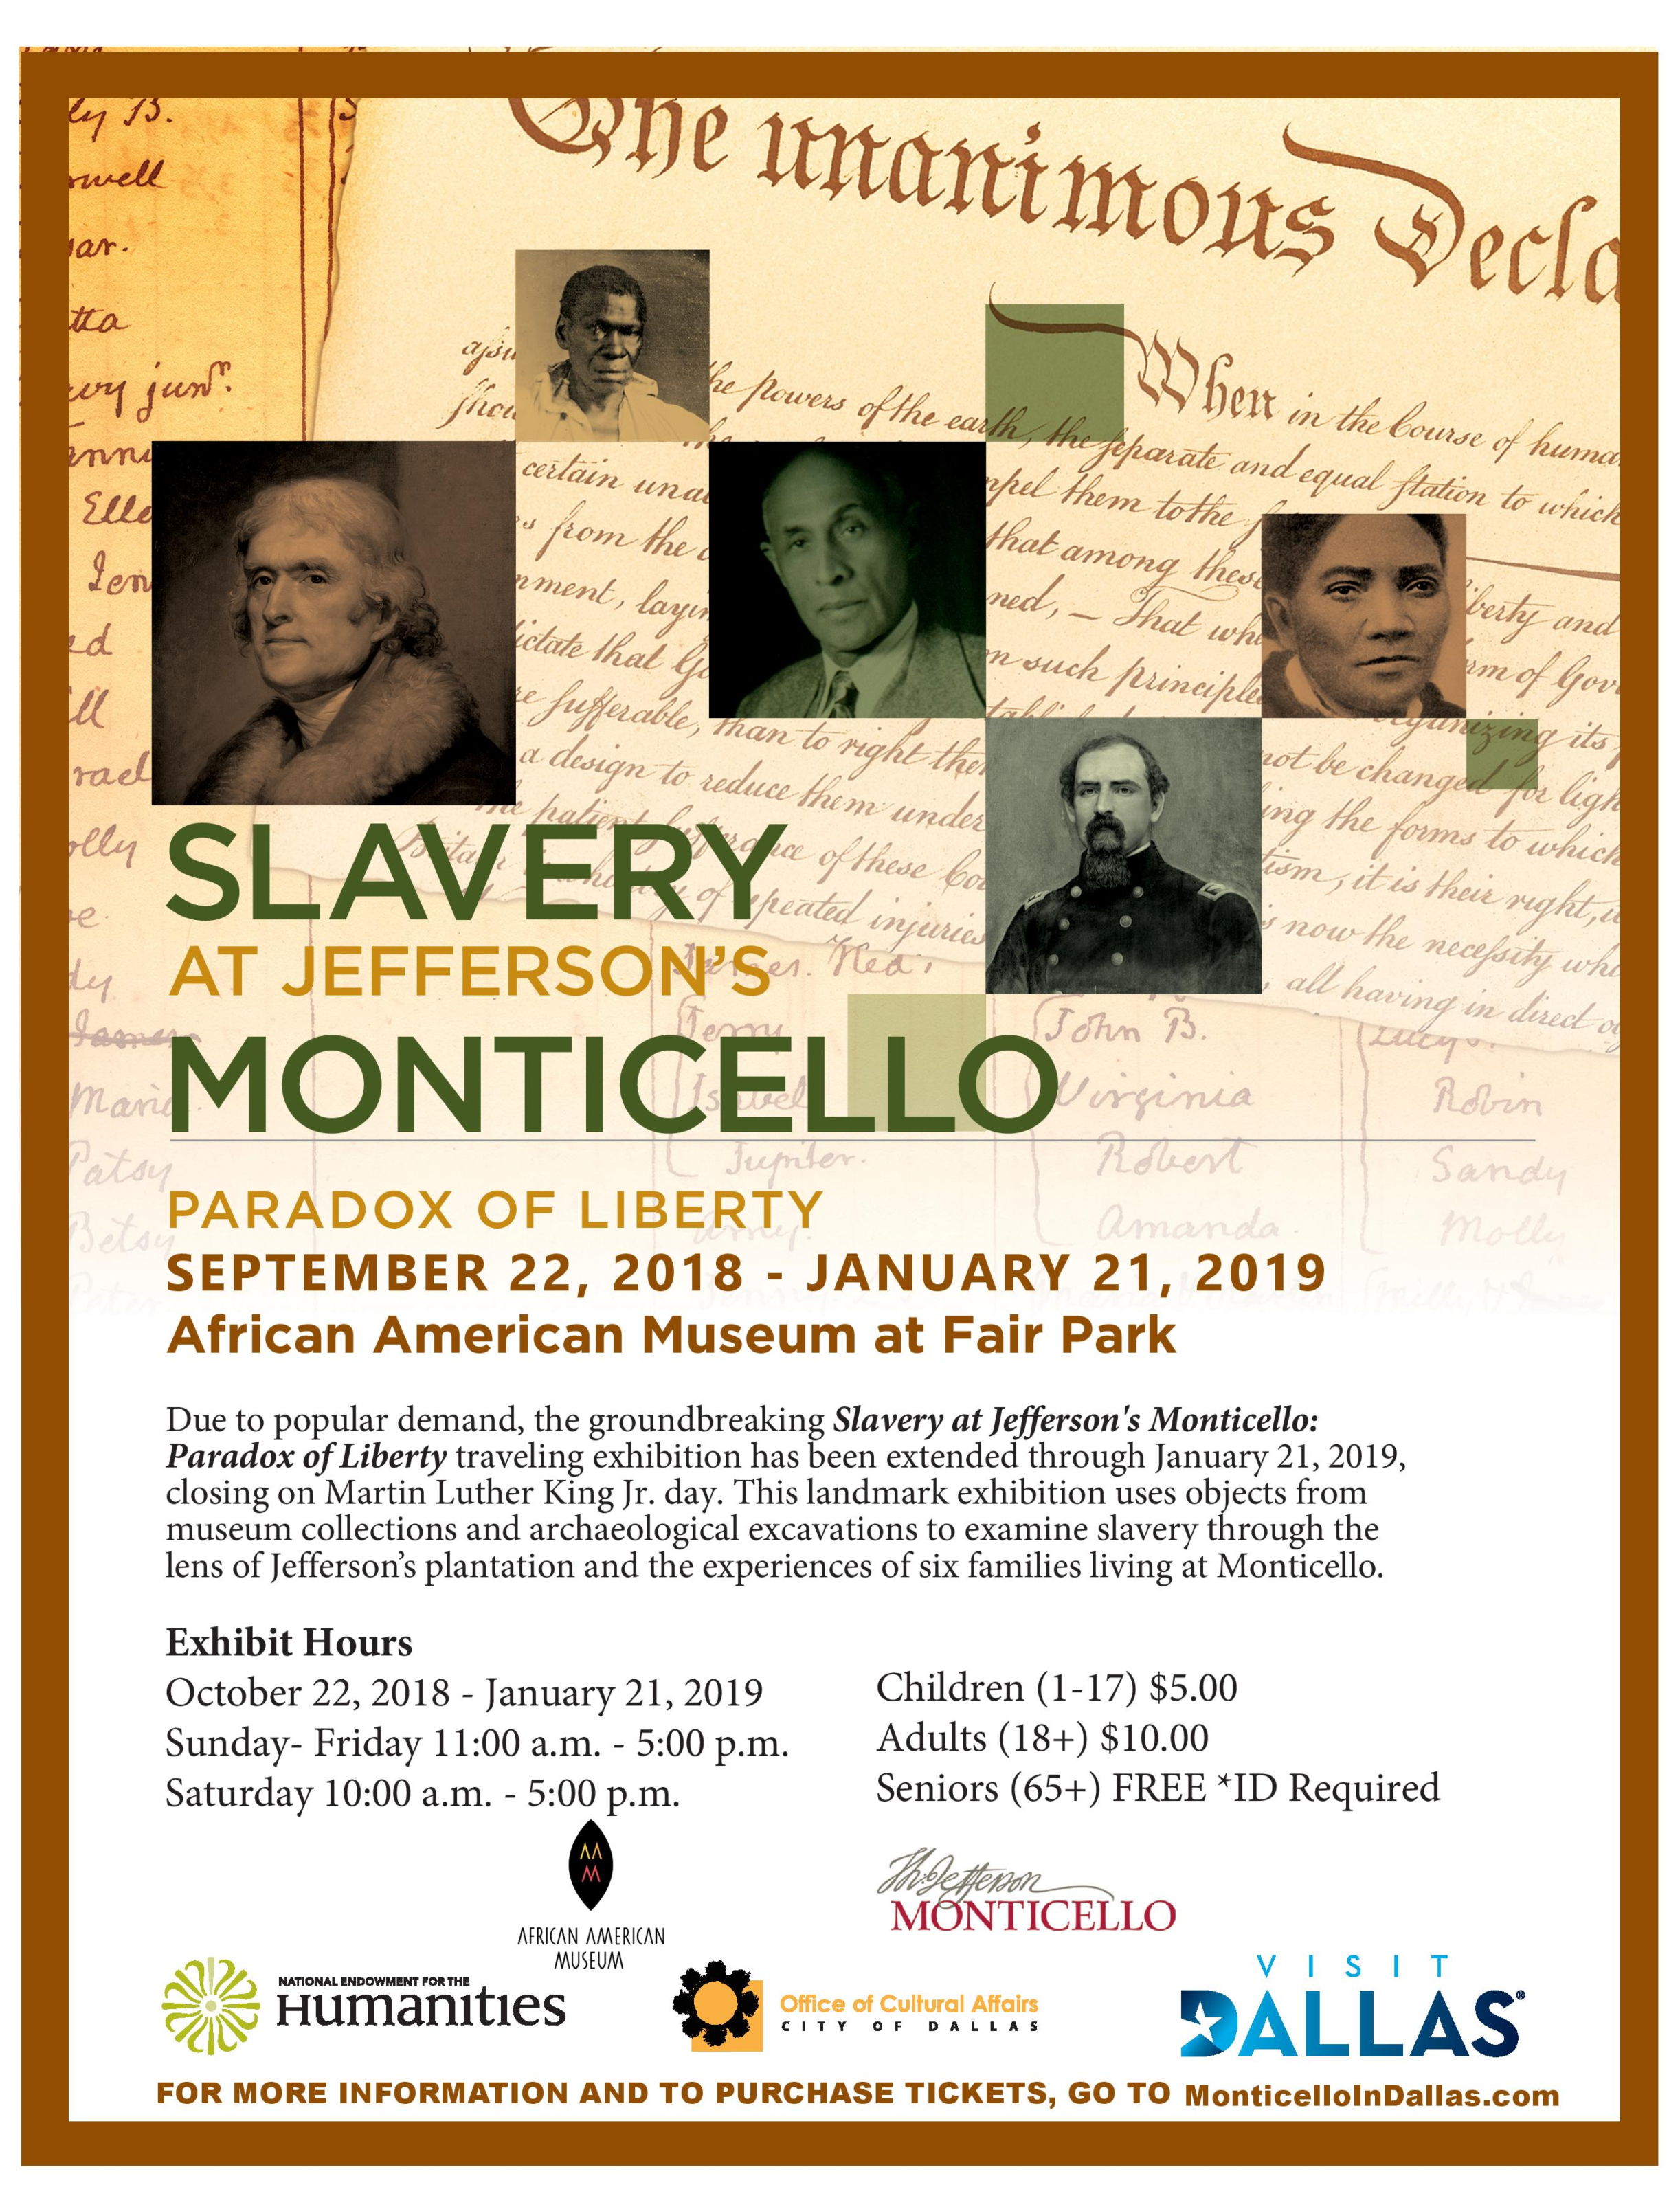 Slavery at Jefferson's Monticello: Paradox of Liberty @ African American Museum of Dallas